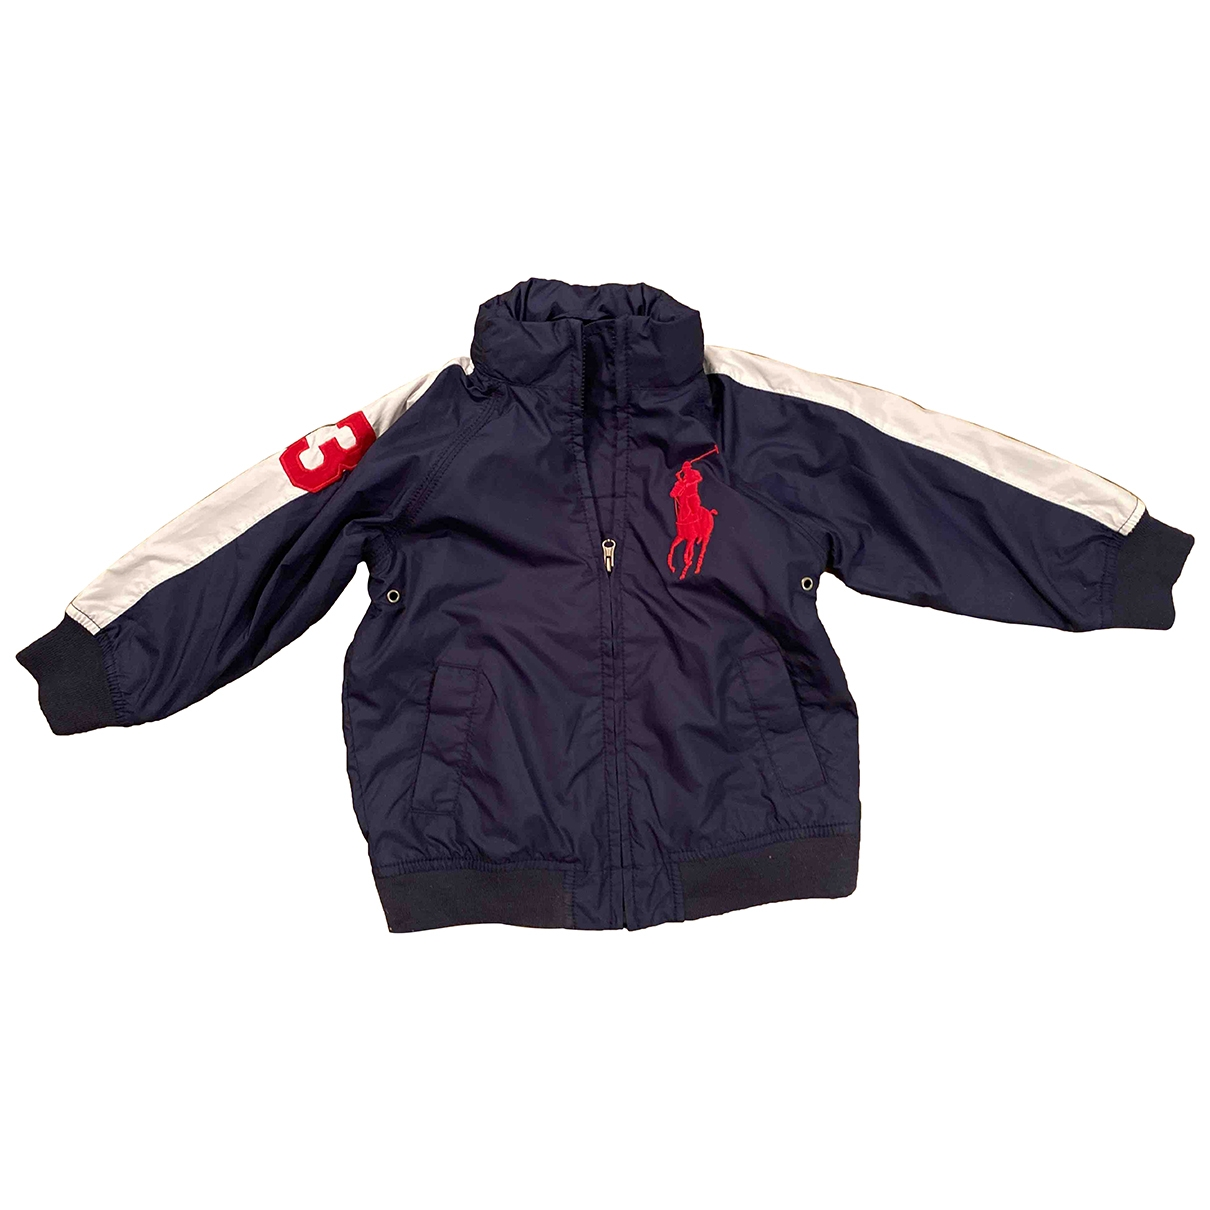 Polo Ralph Lauren \N Blue jacket & coat for Kids 2 years - up to 86cm FR